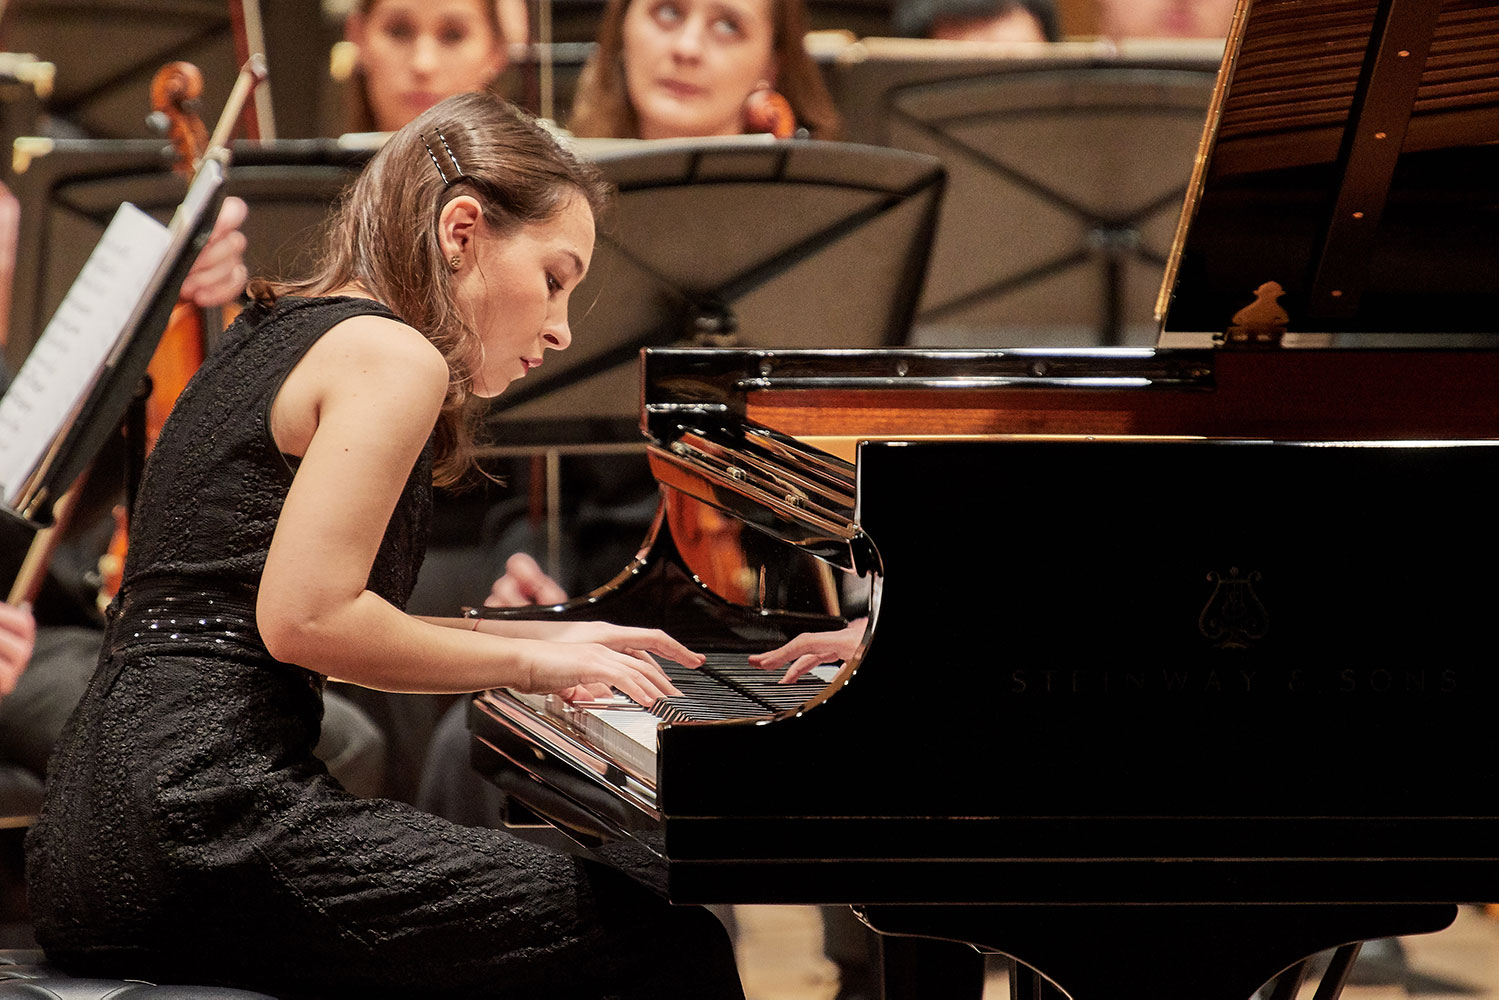 Olga Radovic, a graduate student, plays the inaugural performance on the university's new Steinway model D concert grand piano while performing with the UConn Symphony Orchestra at von der Mehden Recital Hall on Dec. 7, 2017.